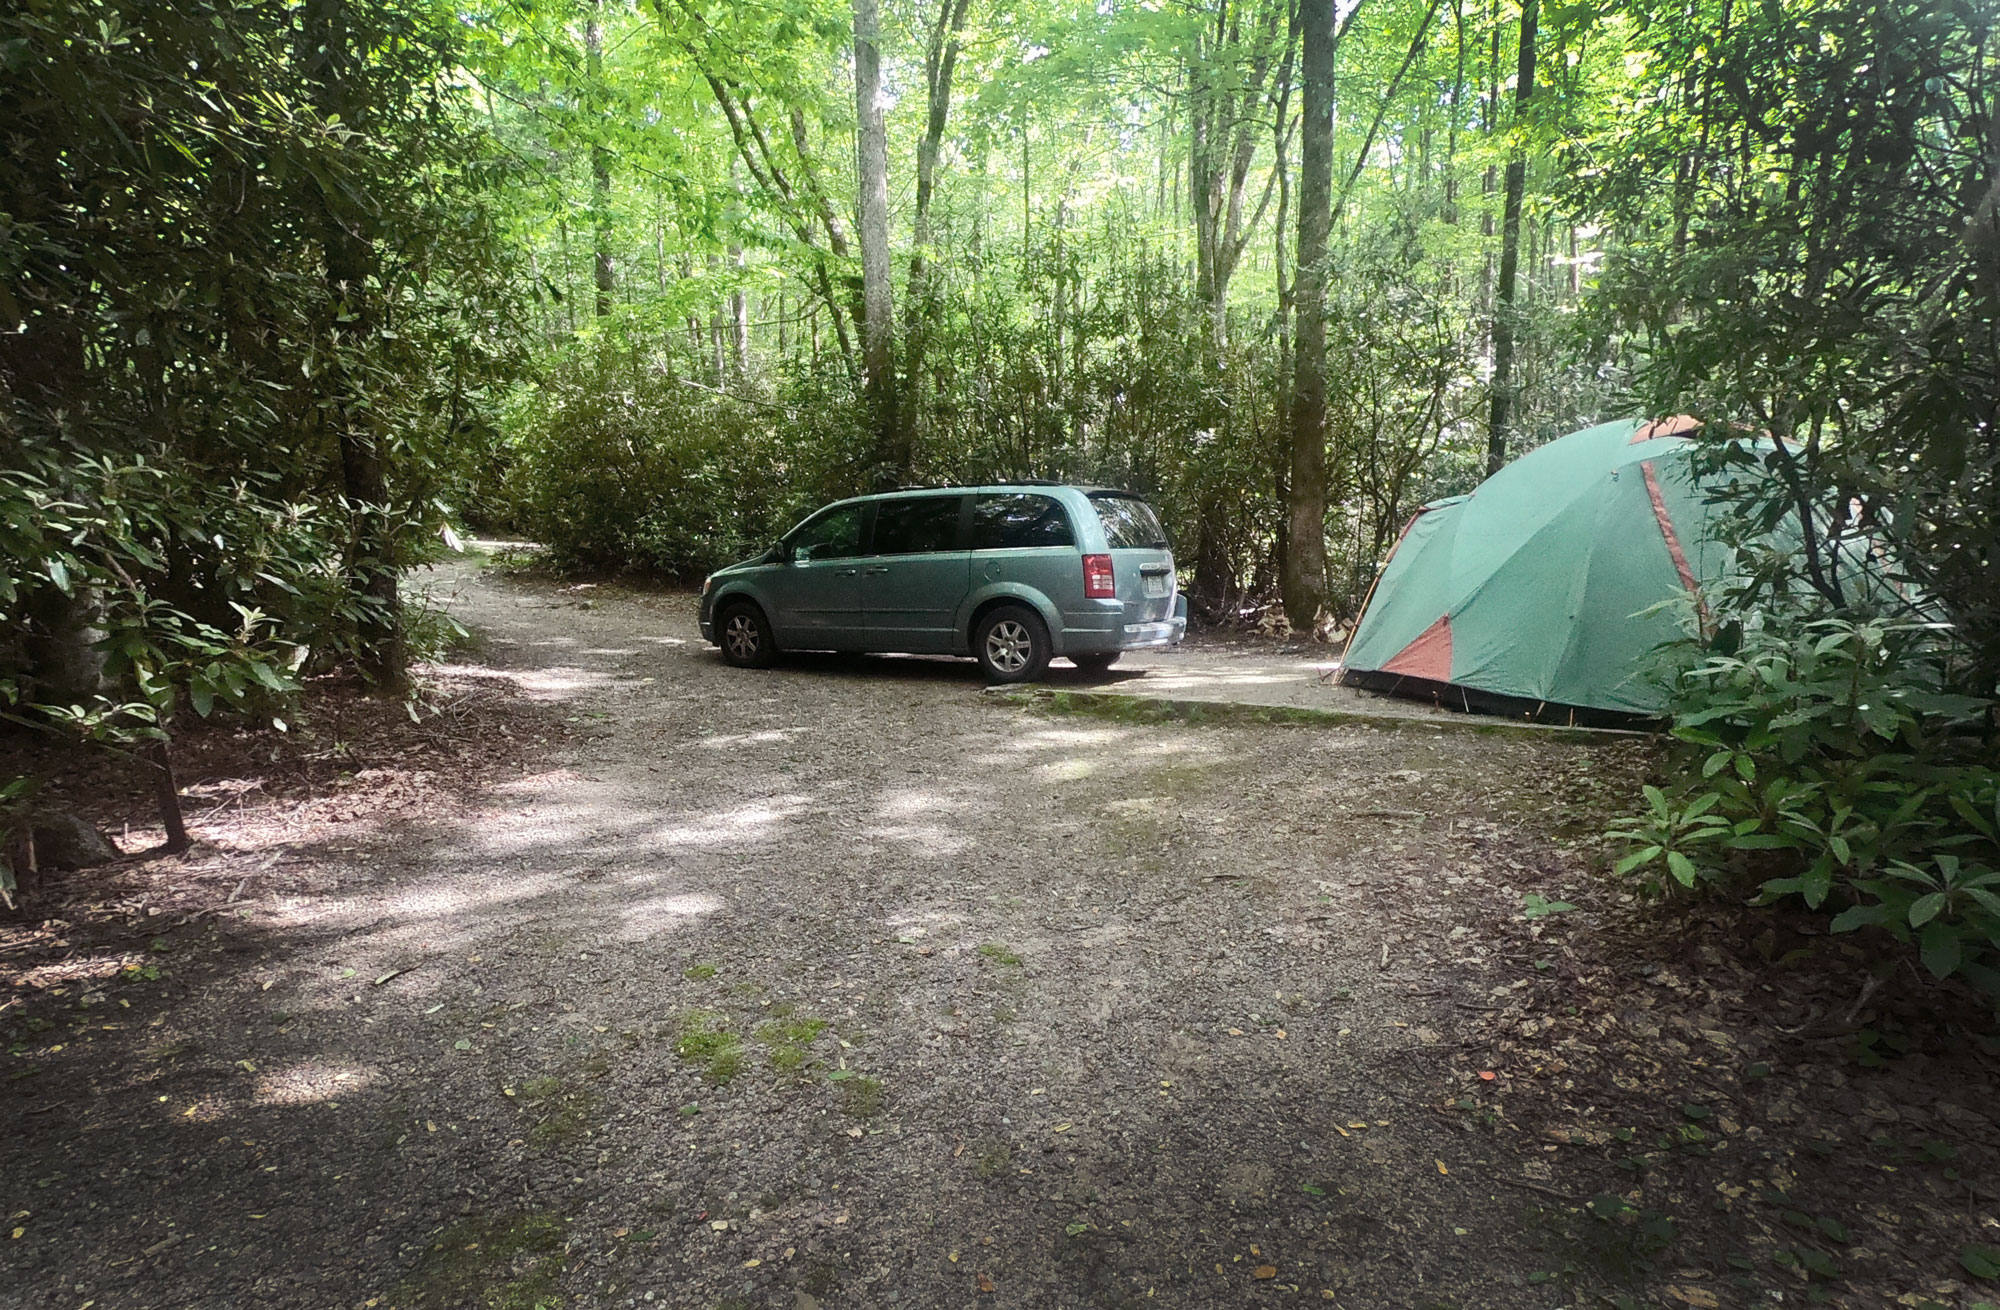 Standing Indian Campground campsite with van and green tent